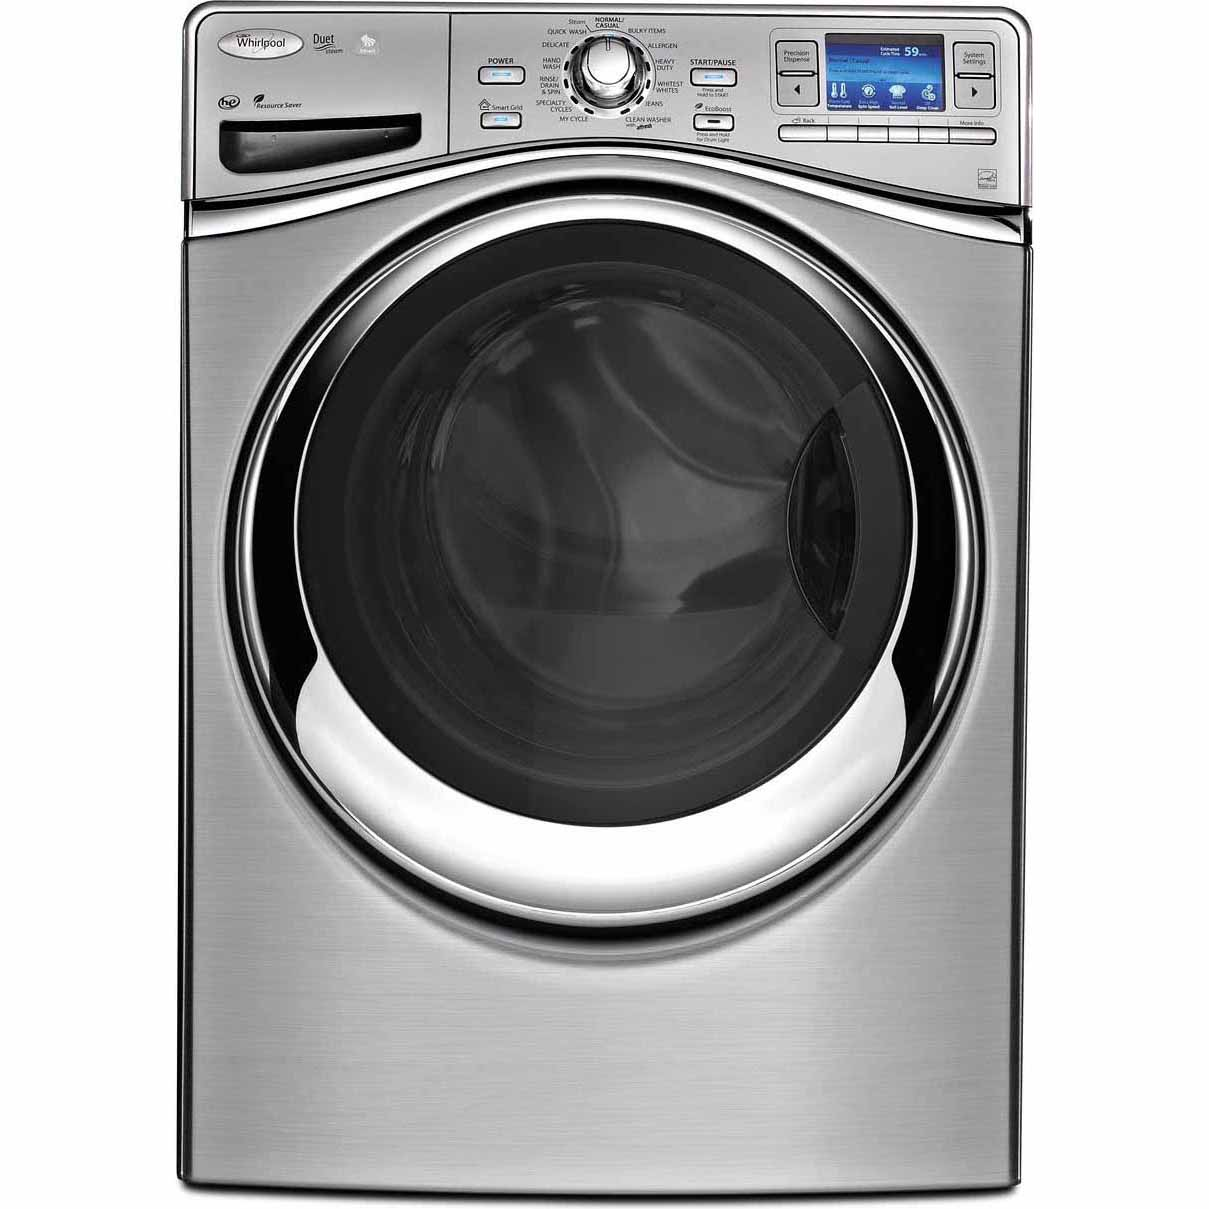 Whirlpool 4.3 cu. ft. Smart Front-Load Washer w/ 6th Sense Live™ Technology - Silver